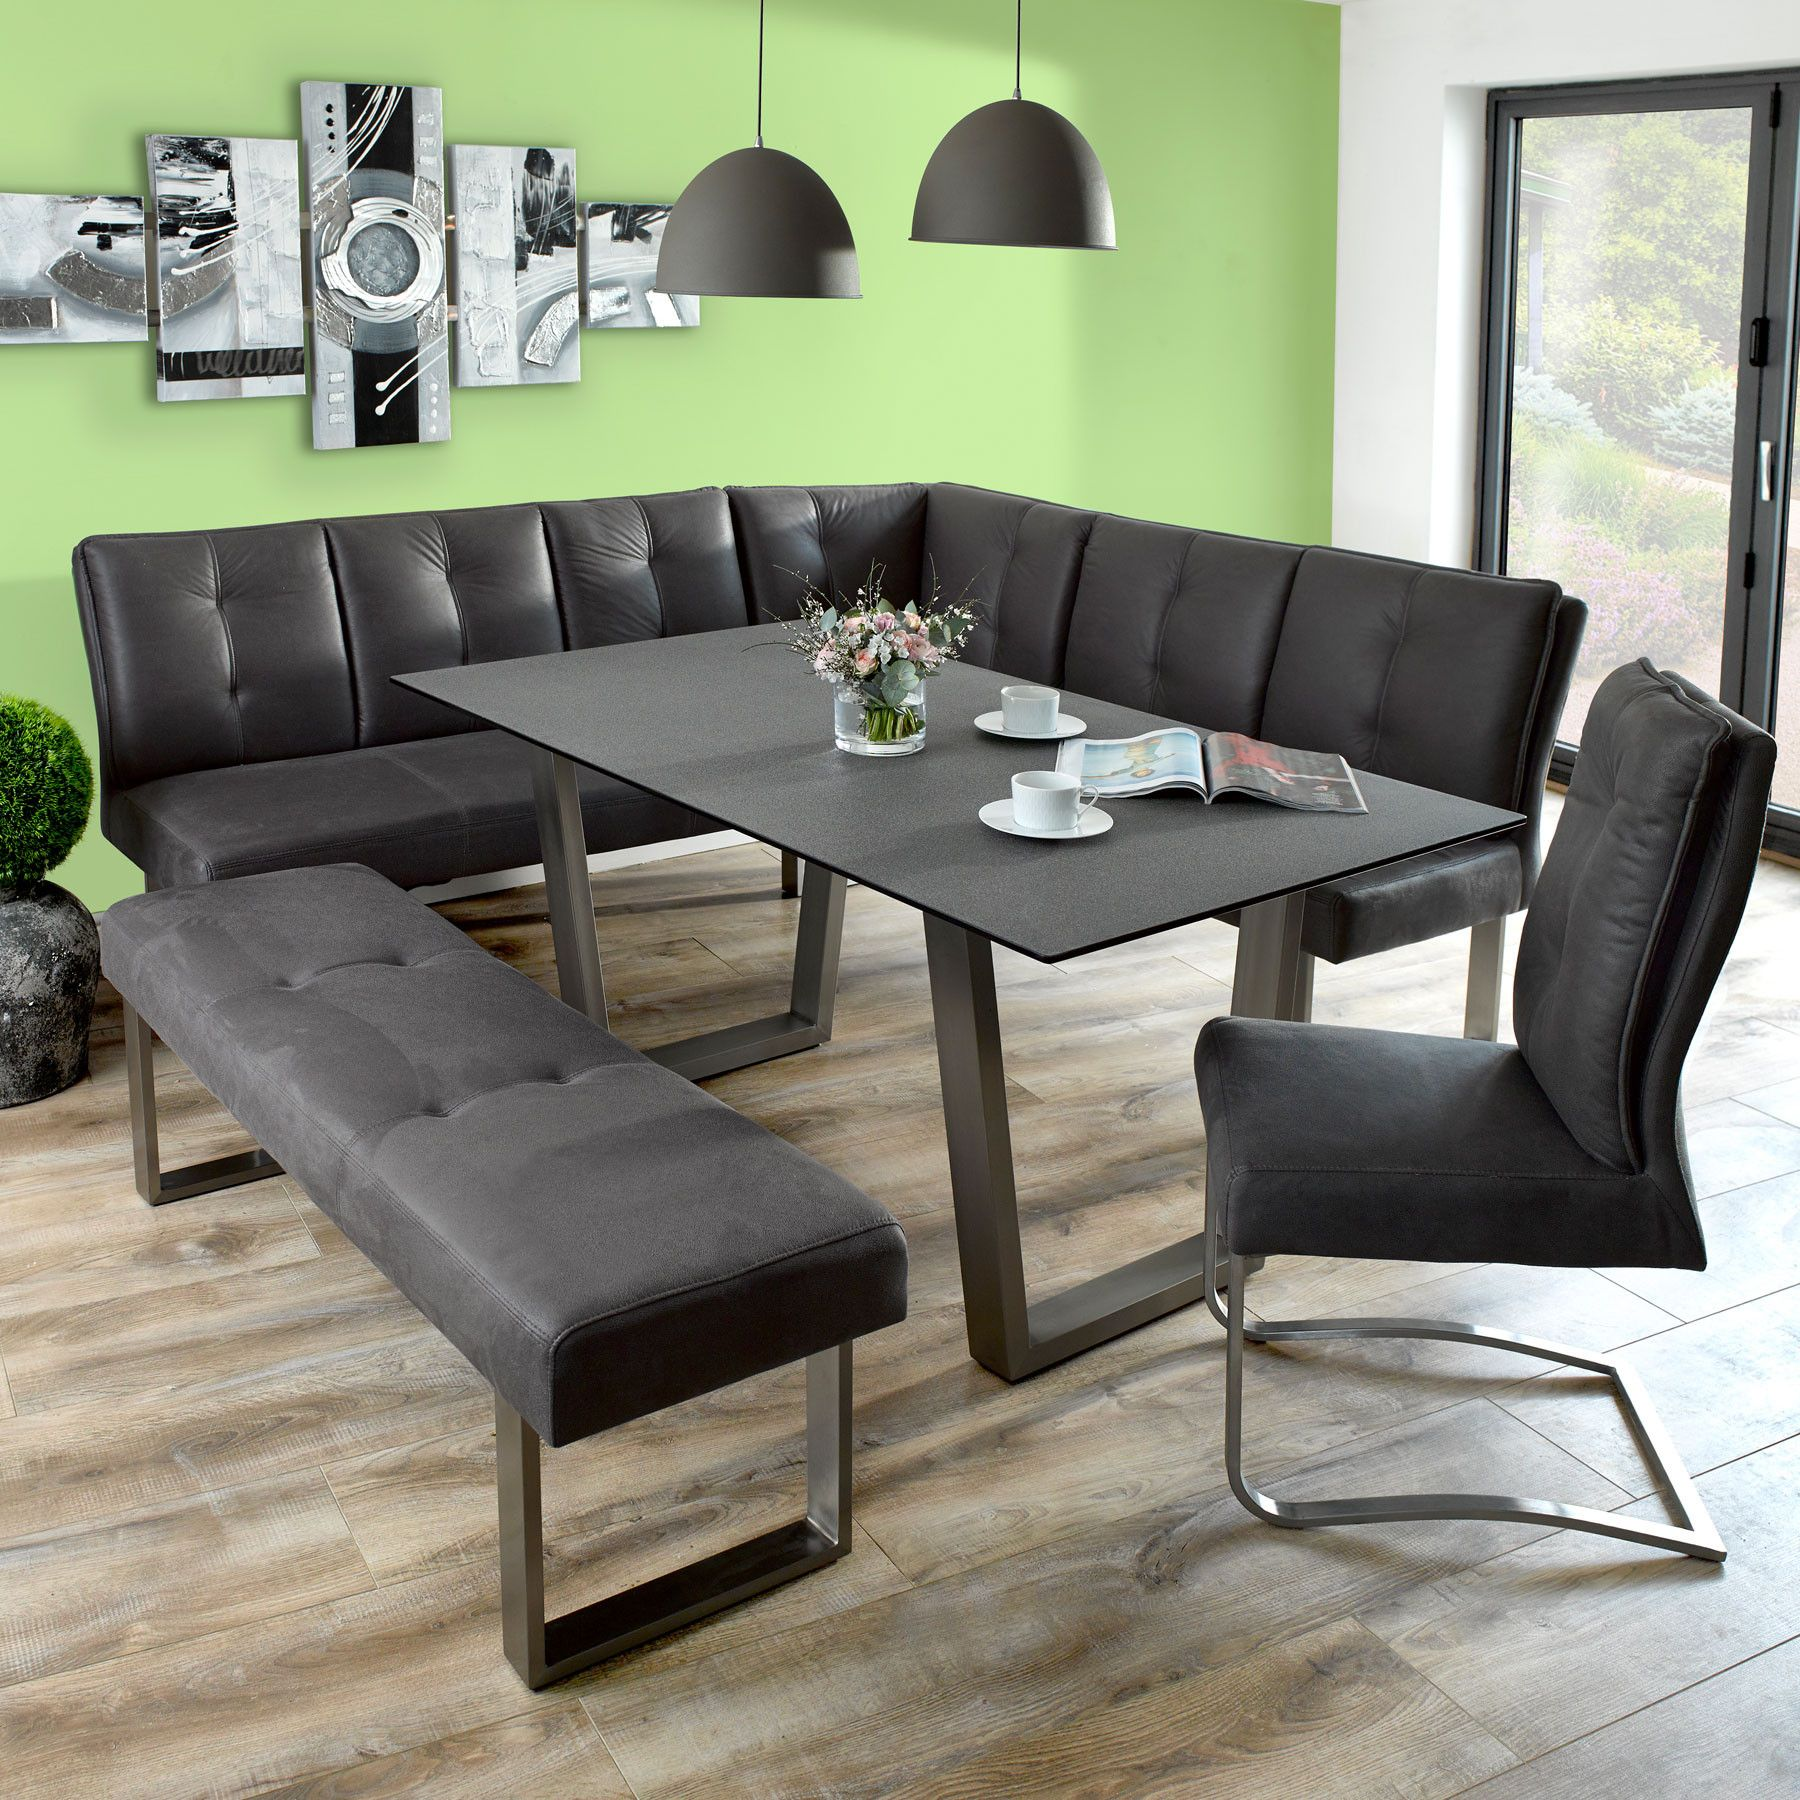 Cadeo Dining Table with Corner Bench and Small Bench | dining room ...